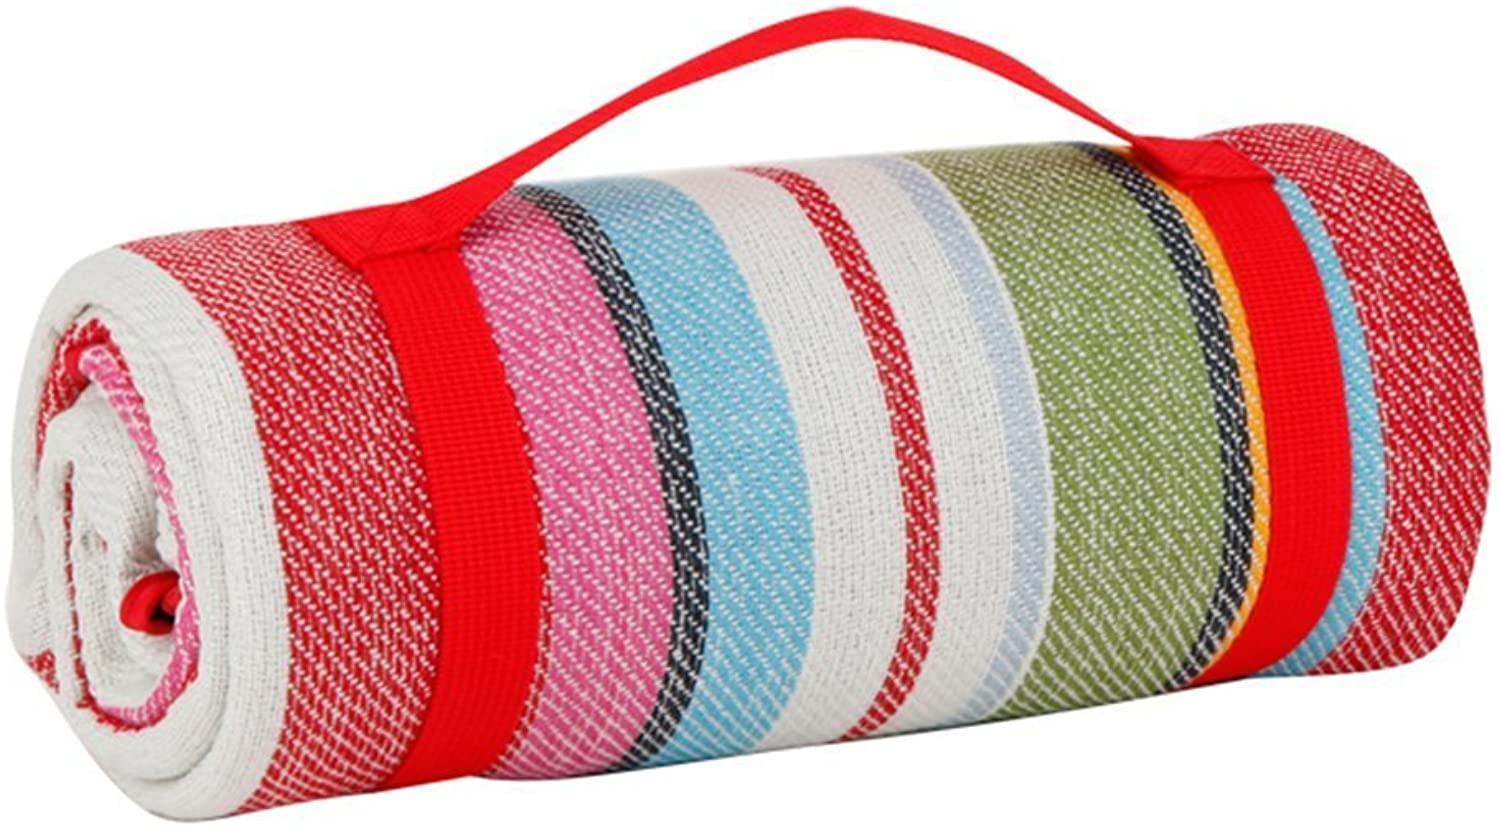 Oops Style Foldable Picnic Blanket Tote Rug Waterproof with Shoulder Strap Beach Camping Outdoor Blanket Mat 59''x 53'' Red Stripe